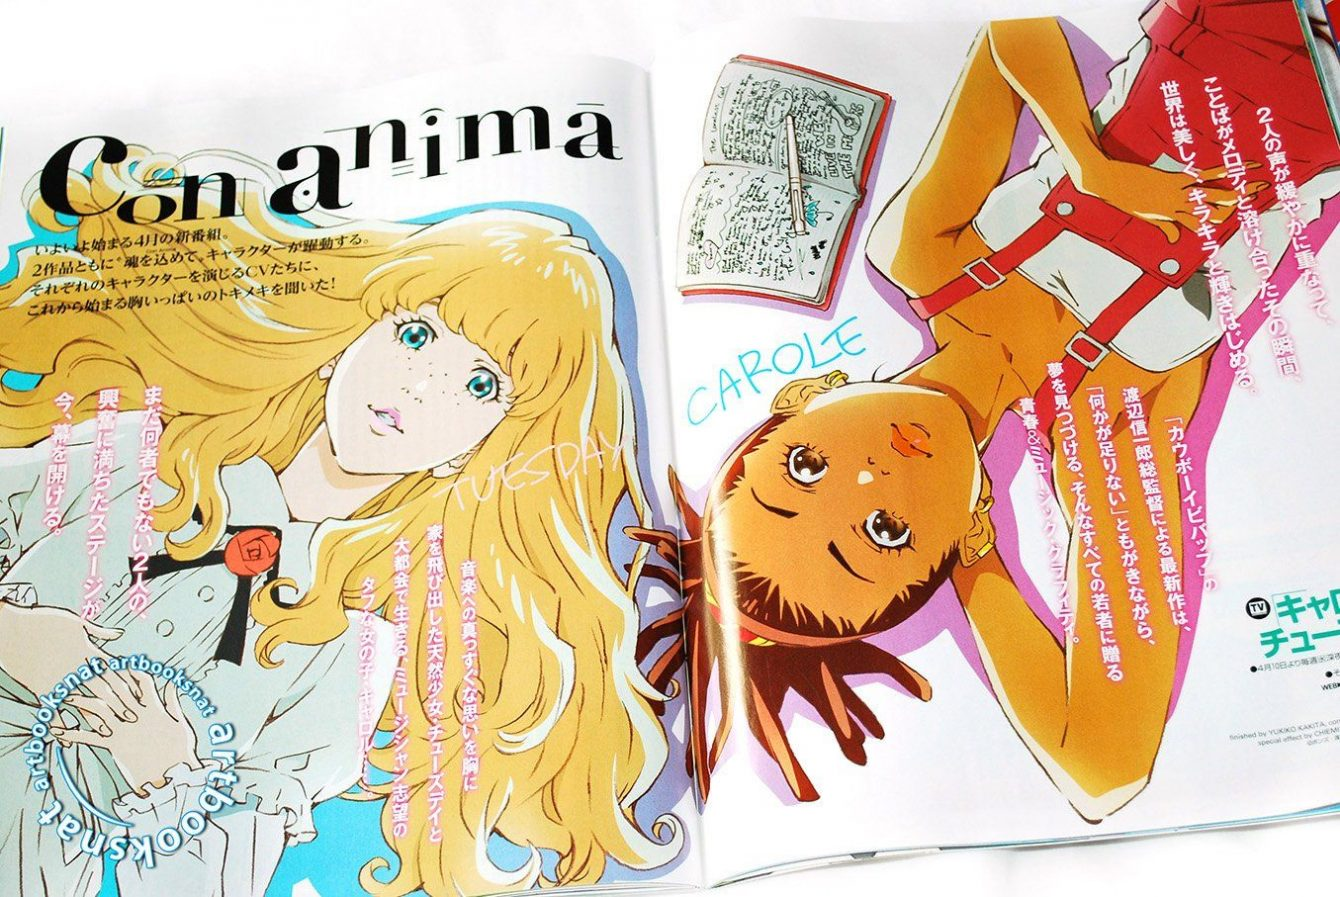 Carole & Tuesday in manga version debuts in Italy